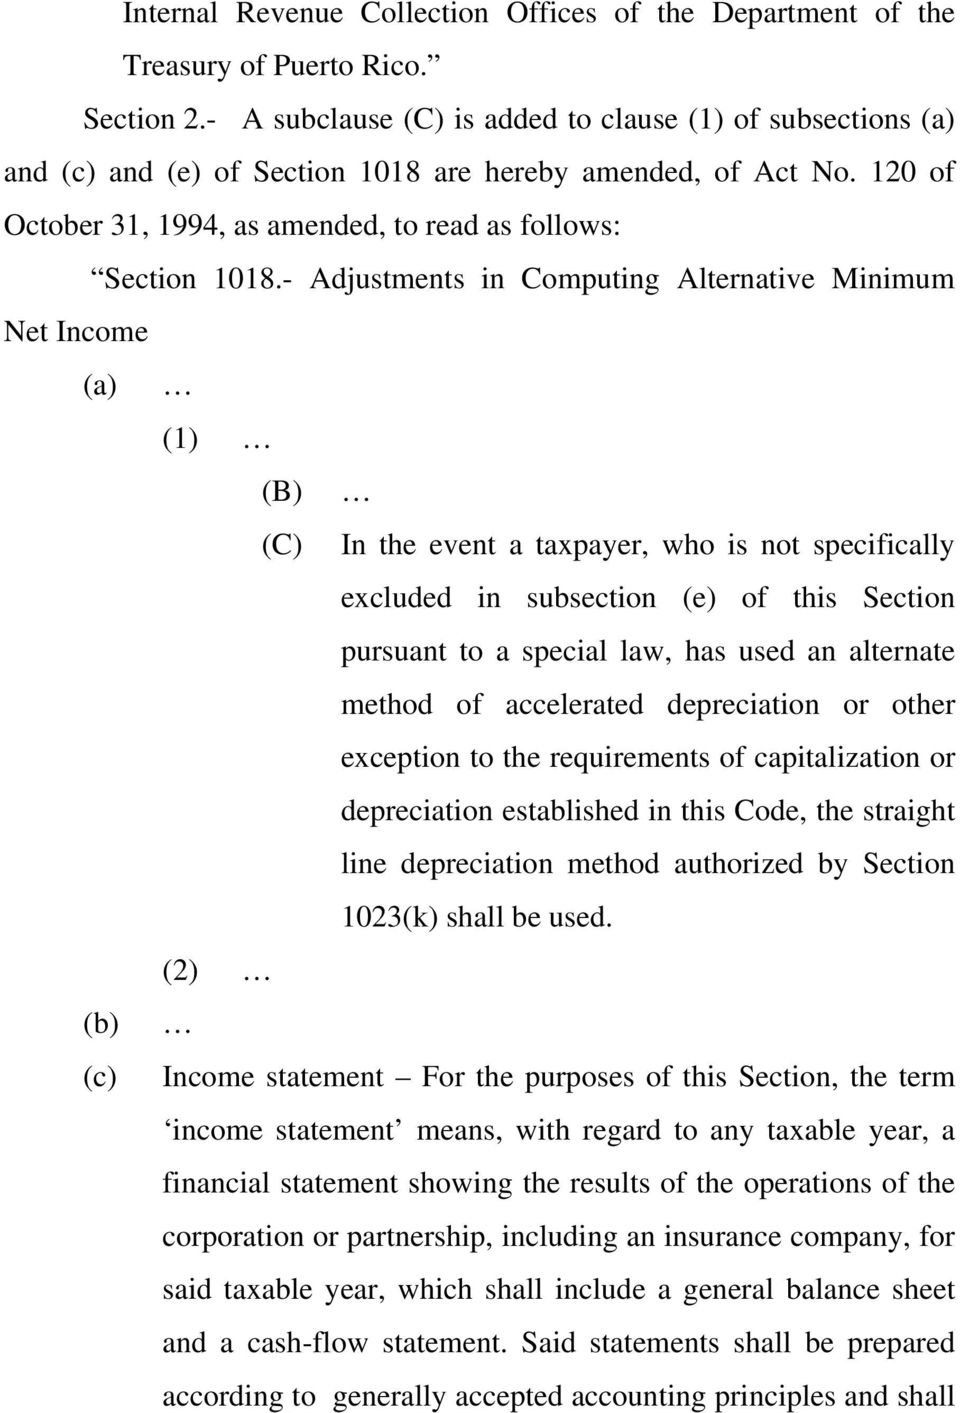 - Adjustments in Computing Alternative Minimum Net Income (a) (1) (B) (C) In the event a taxpayer, who is not specifically excluded in subsection (e) of this Section pursuant to a special law, has